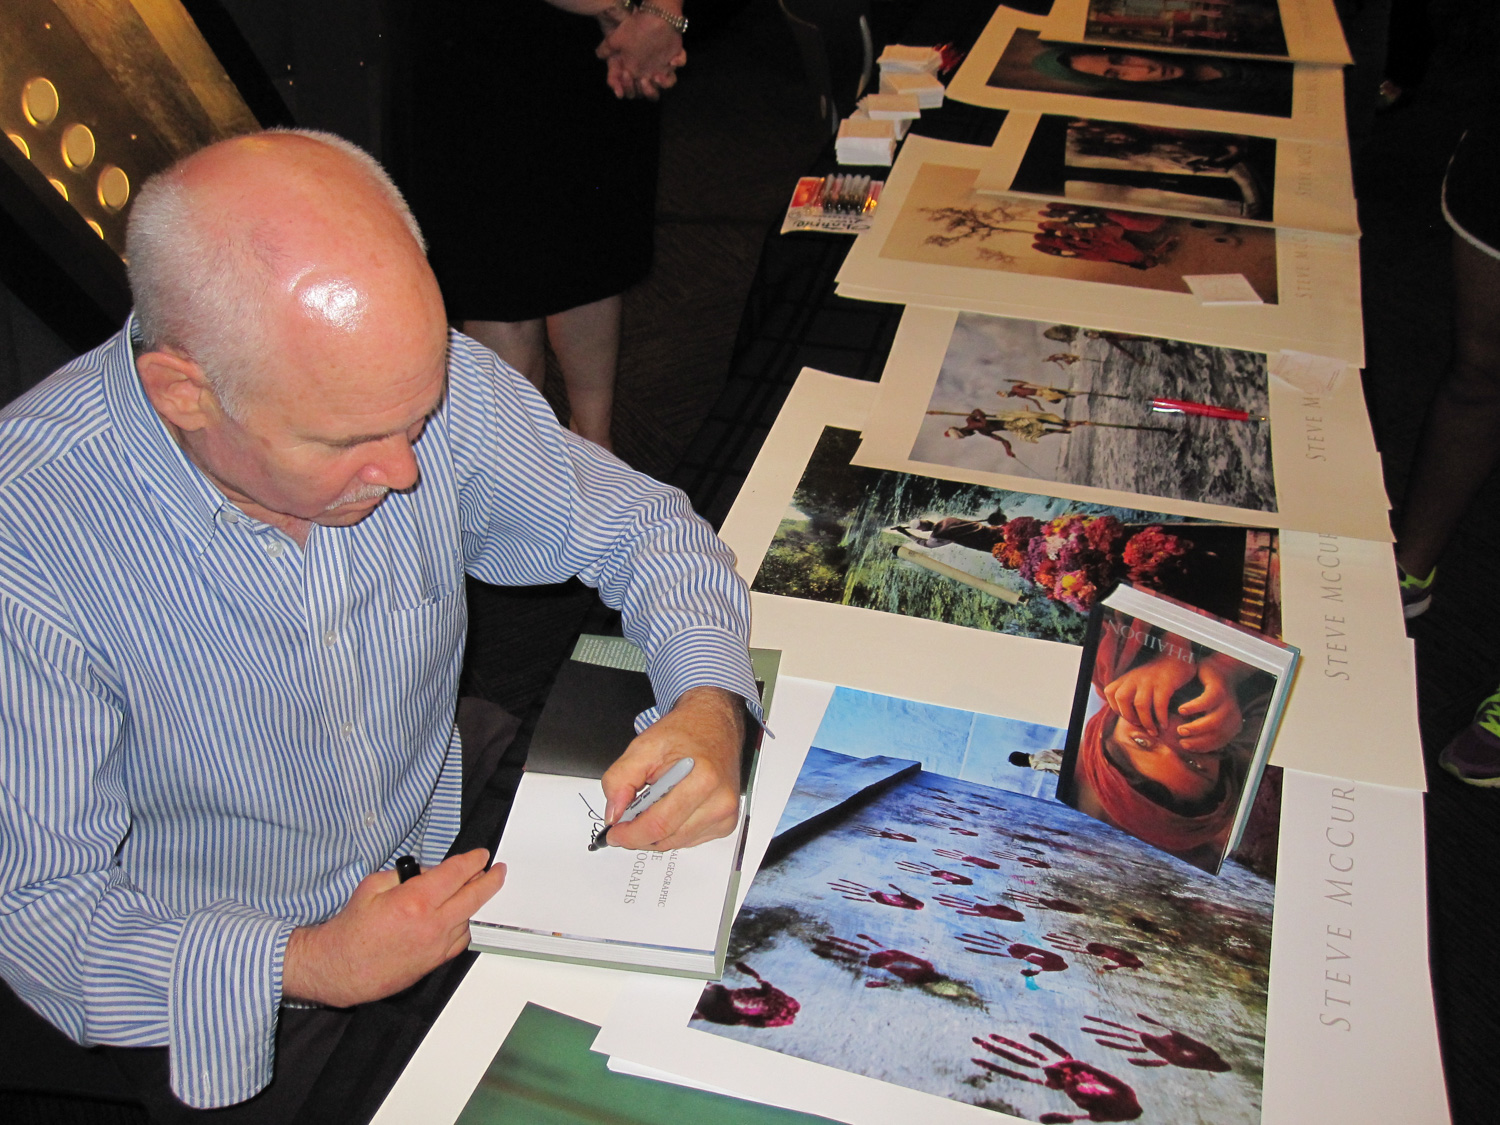 2012-09 - Steve McCurry Autographing